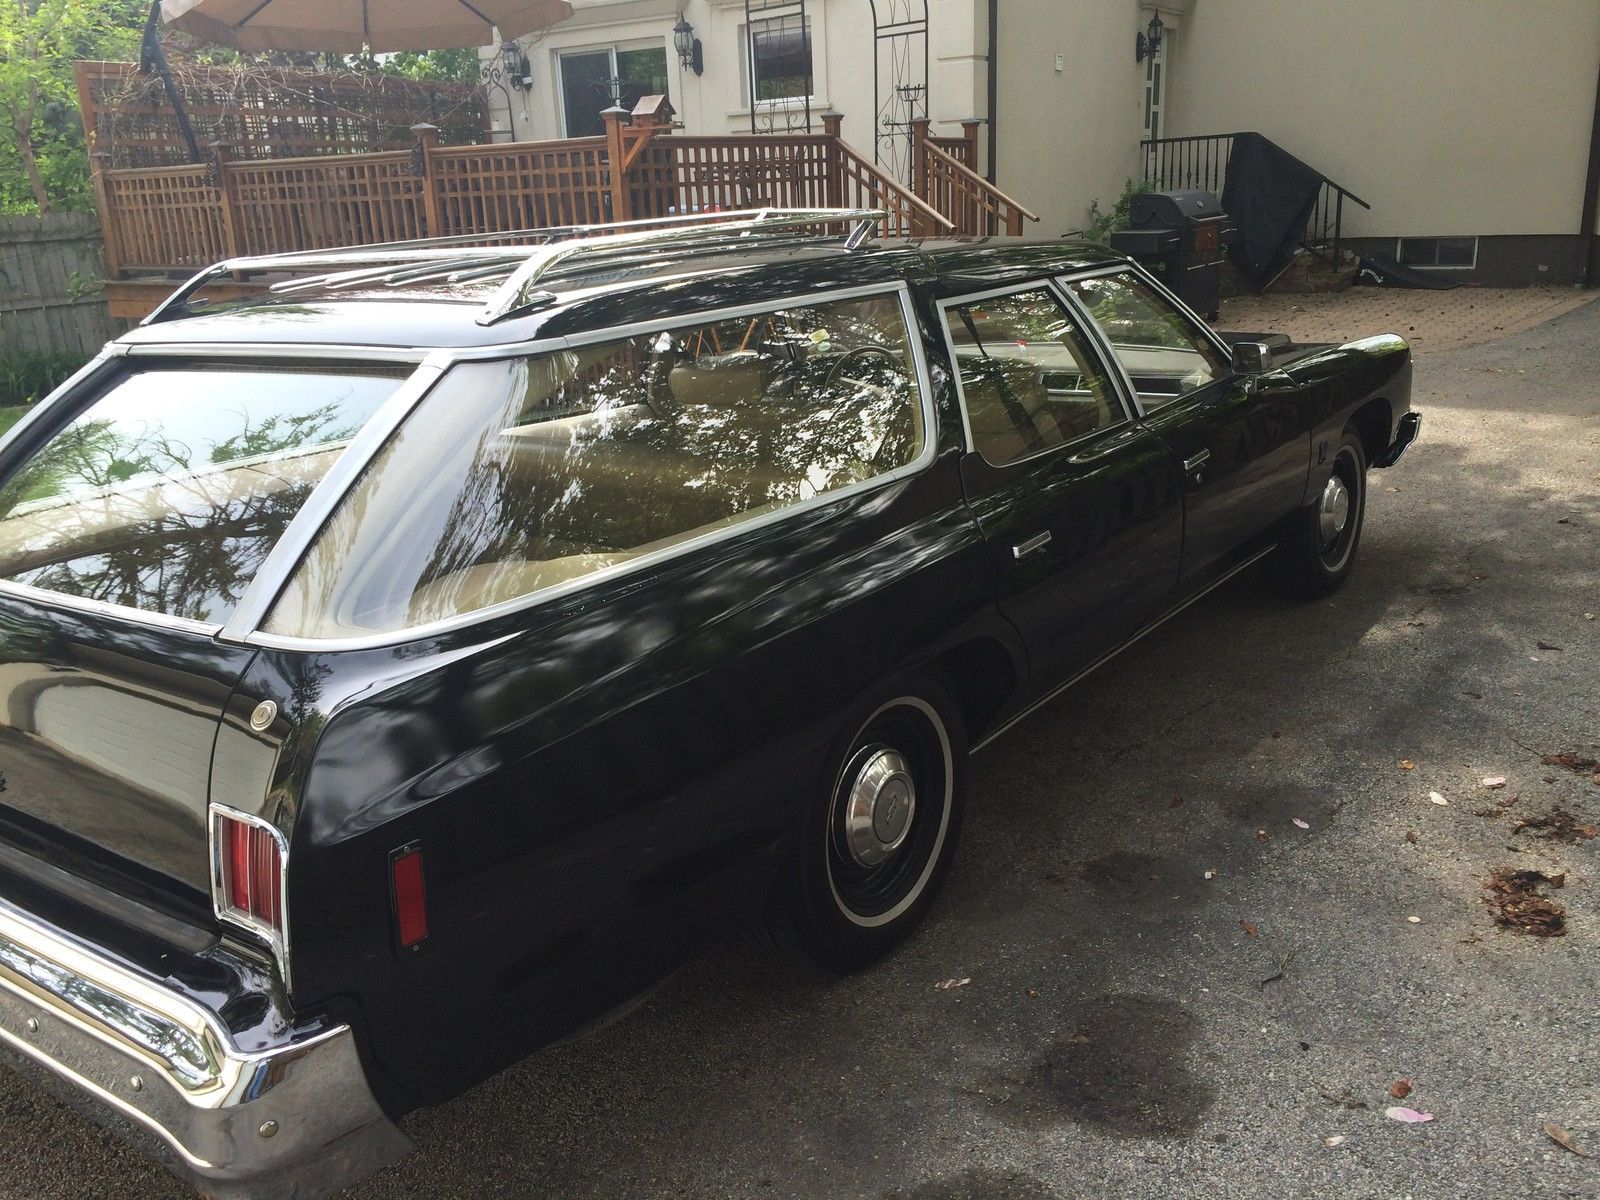 Wow This Is A Rarity A 1975 Chevrolet Bel Air Wagon The Bel Air Was Once The Snazziest Of The Chevrolet Lineup Cool Old Cars Station Wagon Chevrolet Bel Air